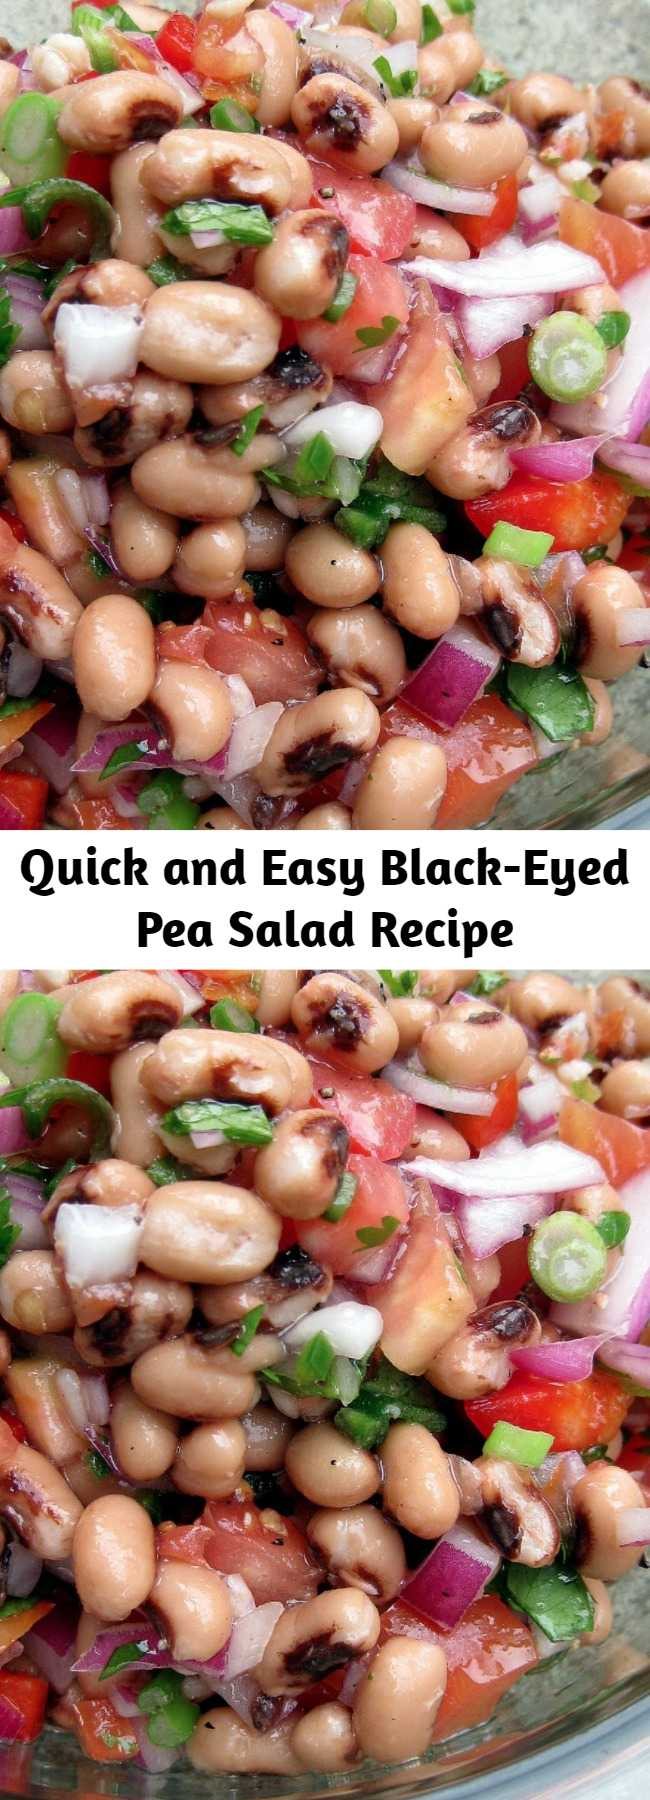 Quick and Easy Black-Eyed Pea Salad Recipe - This bean salad would be a hit on any occasion this summer. It's quick, inexpensive, and easy. And it's addictive.